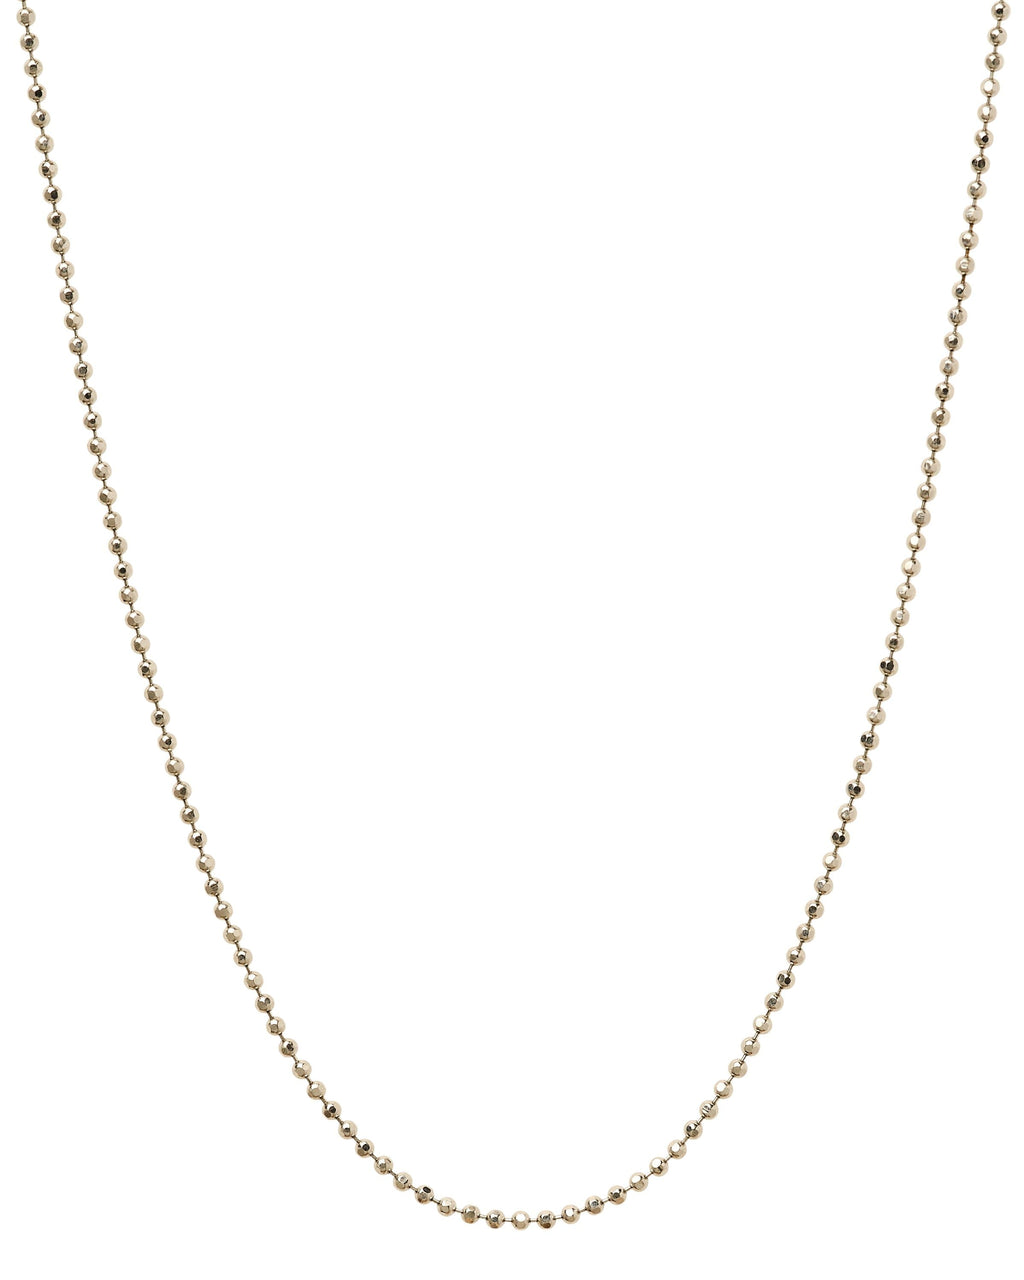 14k White Gold Bead Chain